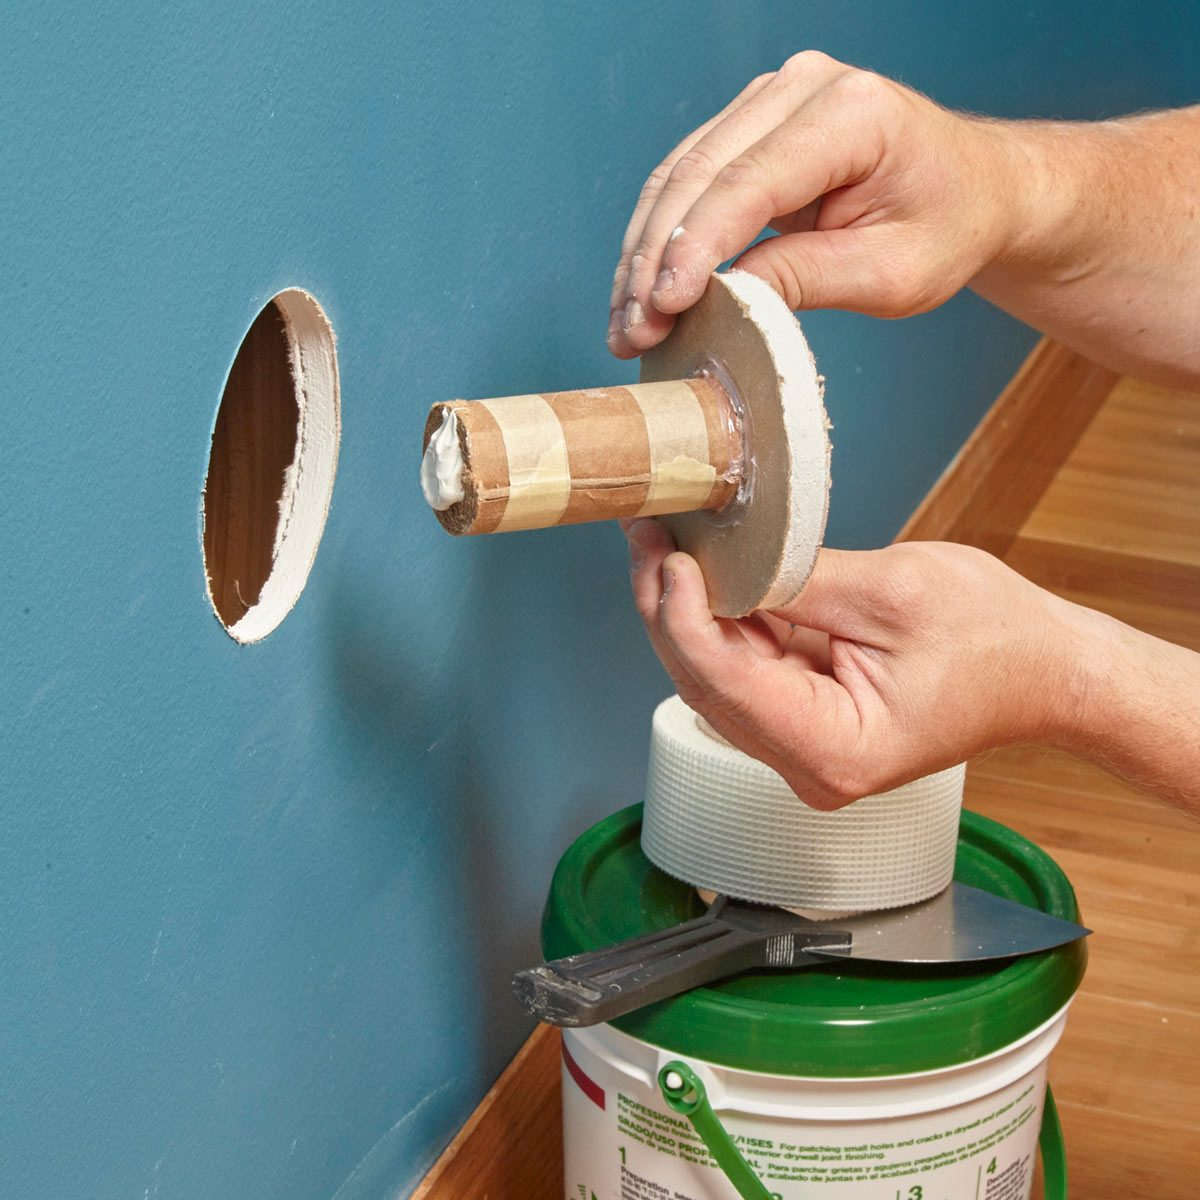 reuse drywall cutouts — tip from the family handyman